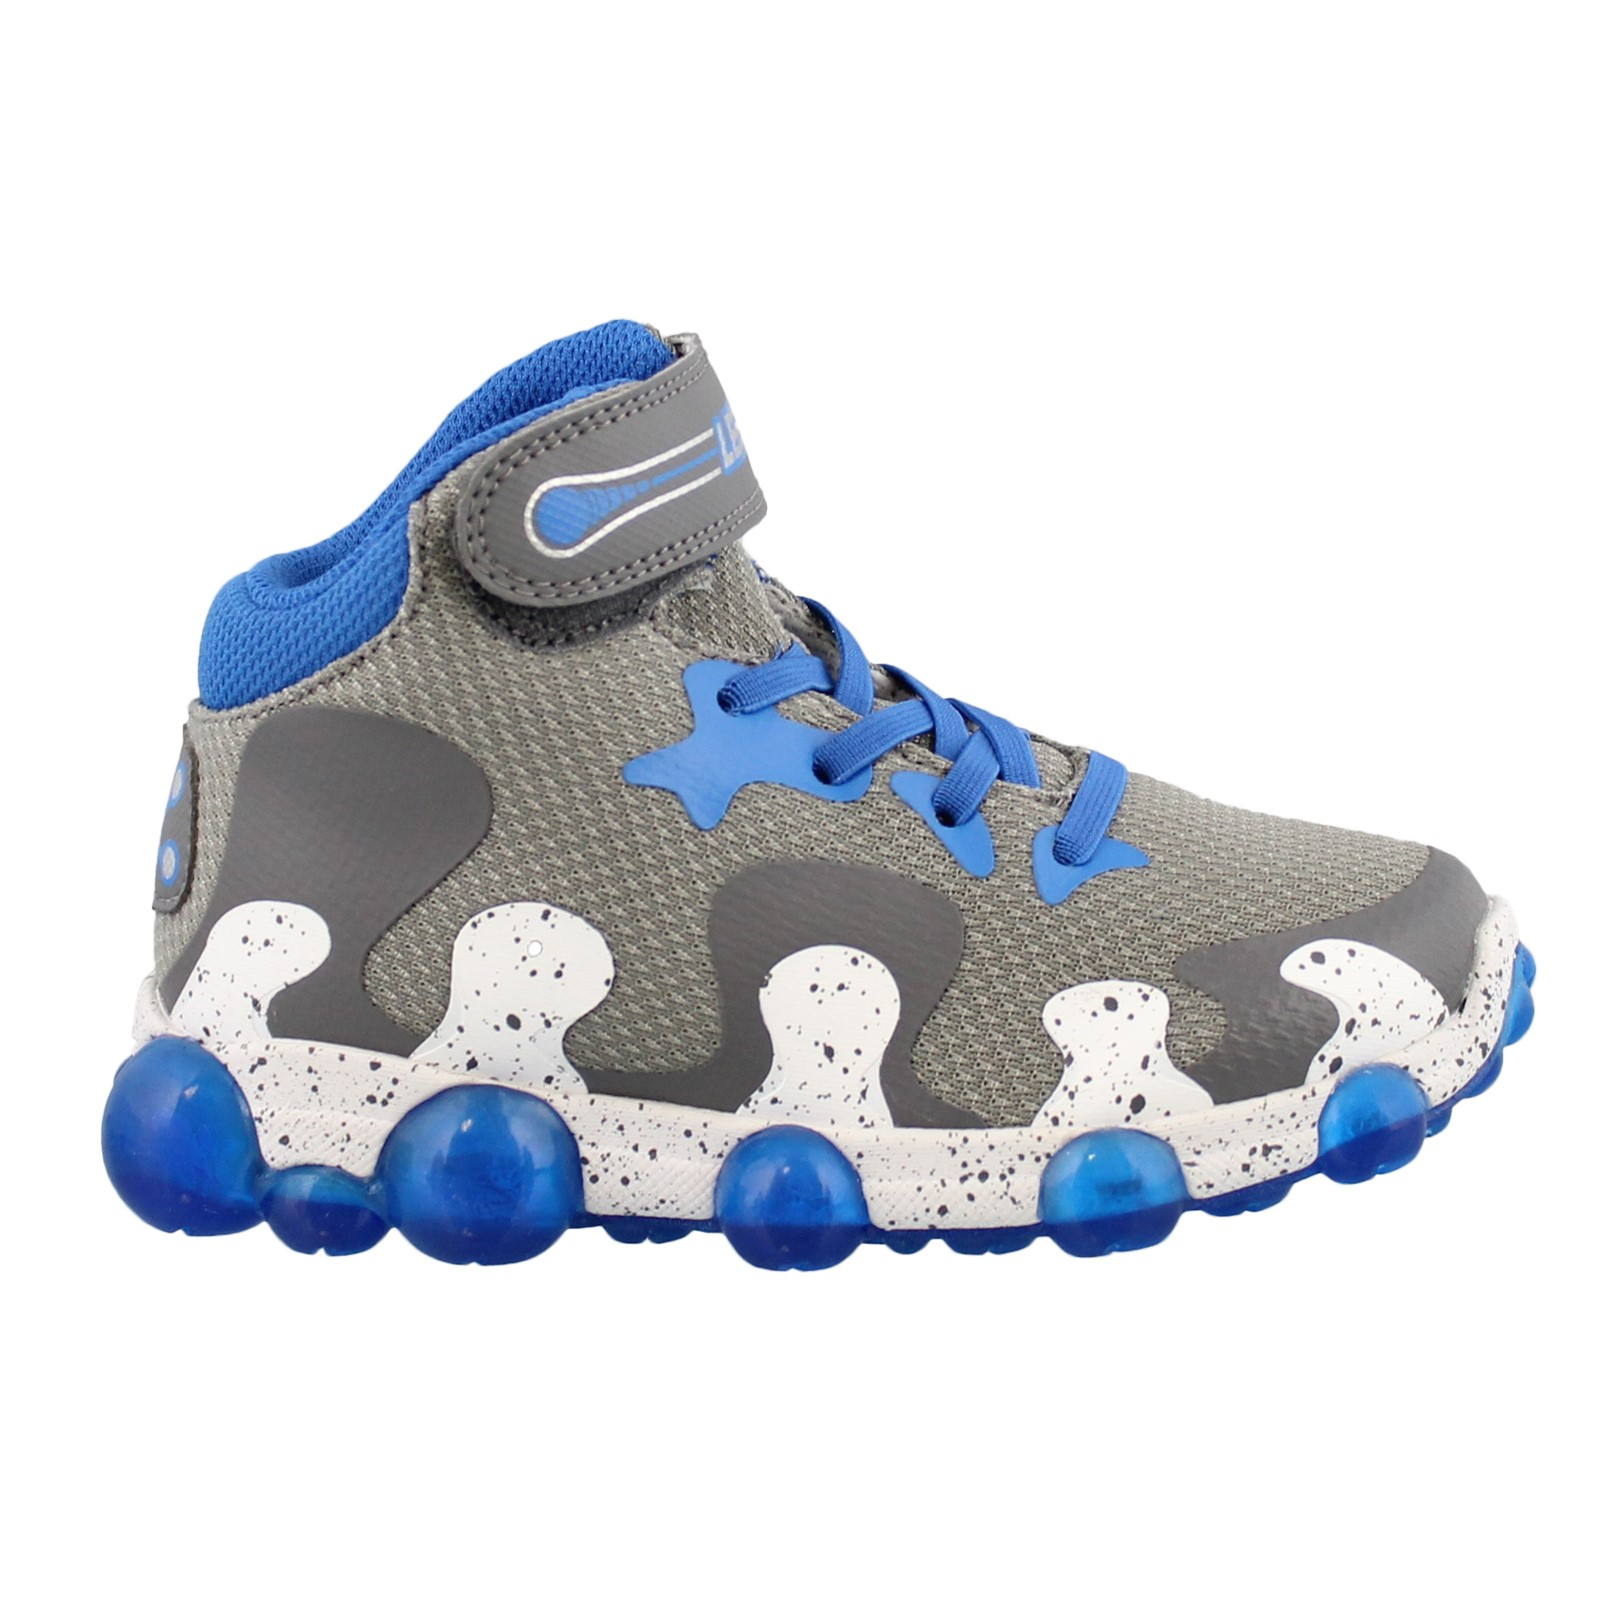 Boy's Stride Rite, Leepz 2.0 High Top Light Up Athletic Sneaker